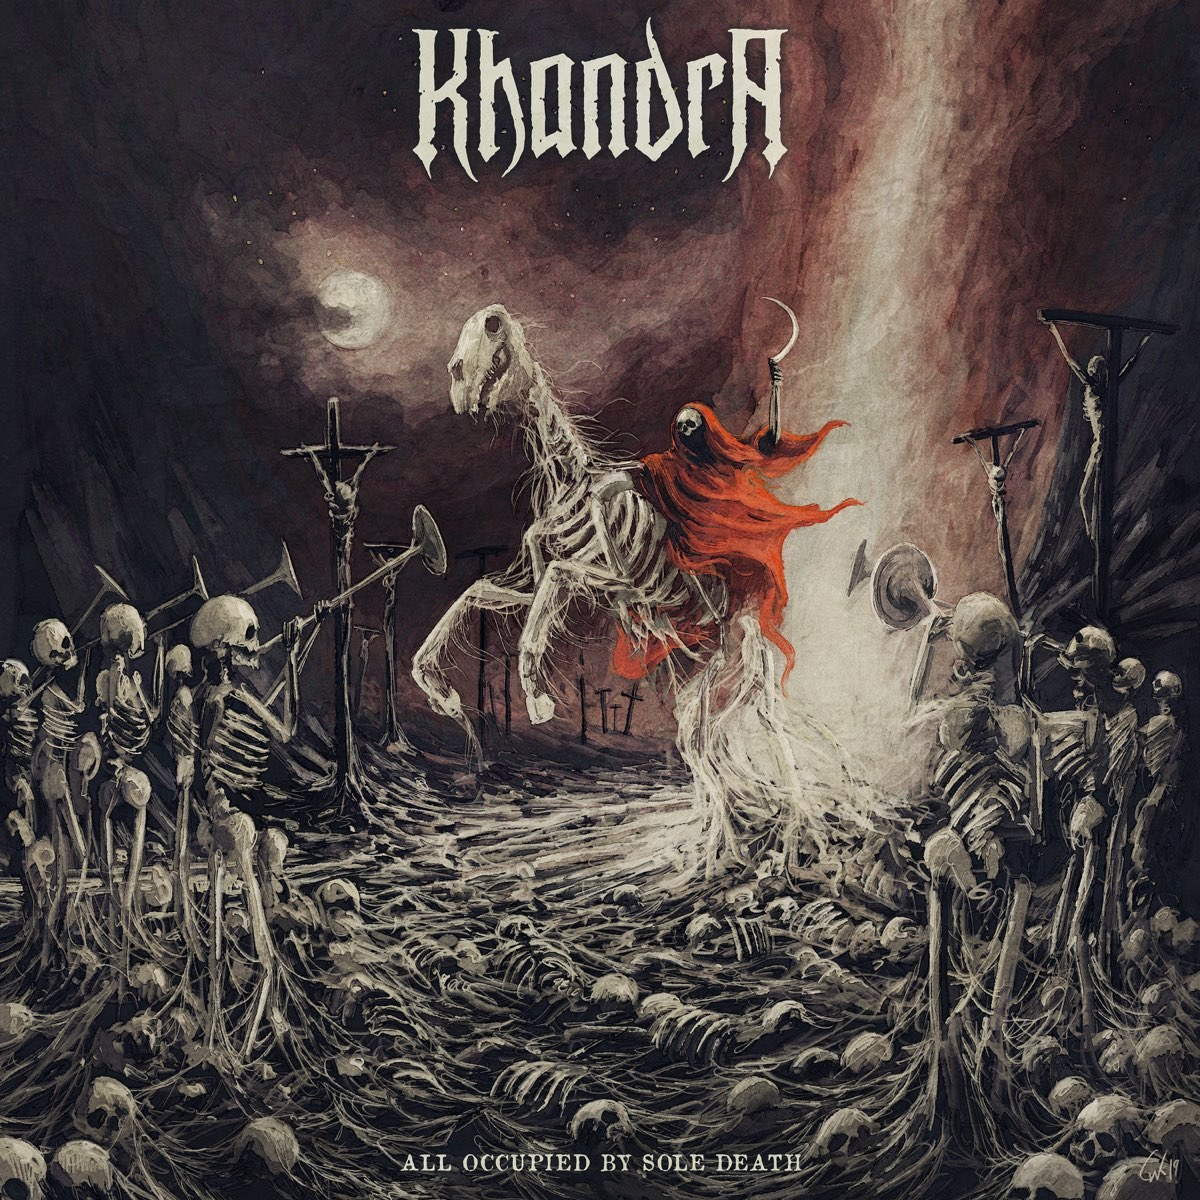 Reviews for Khandra - All Occupied by Sole Death